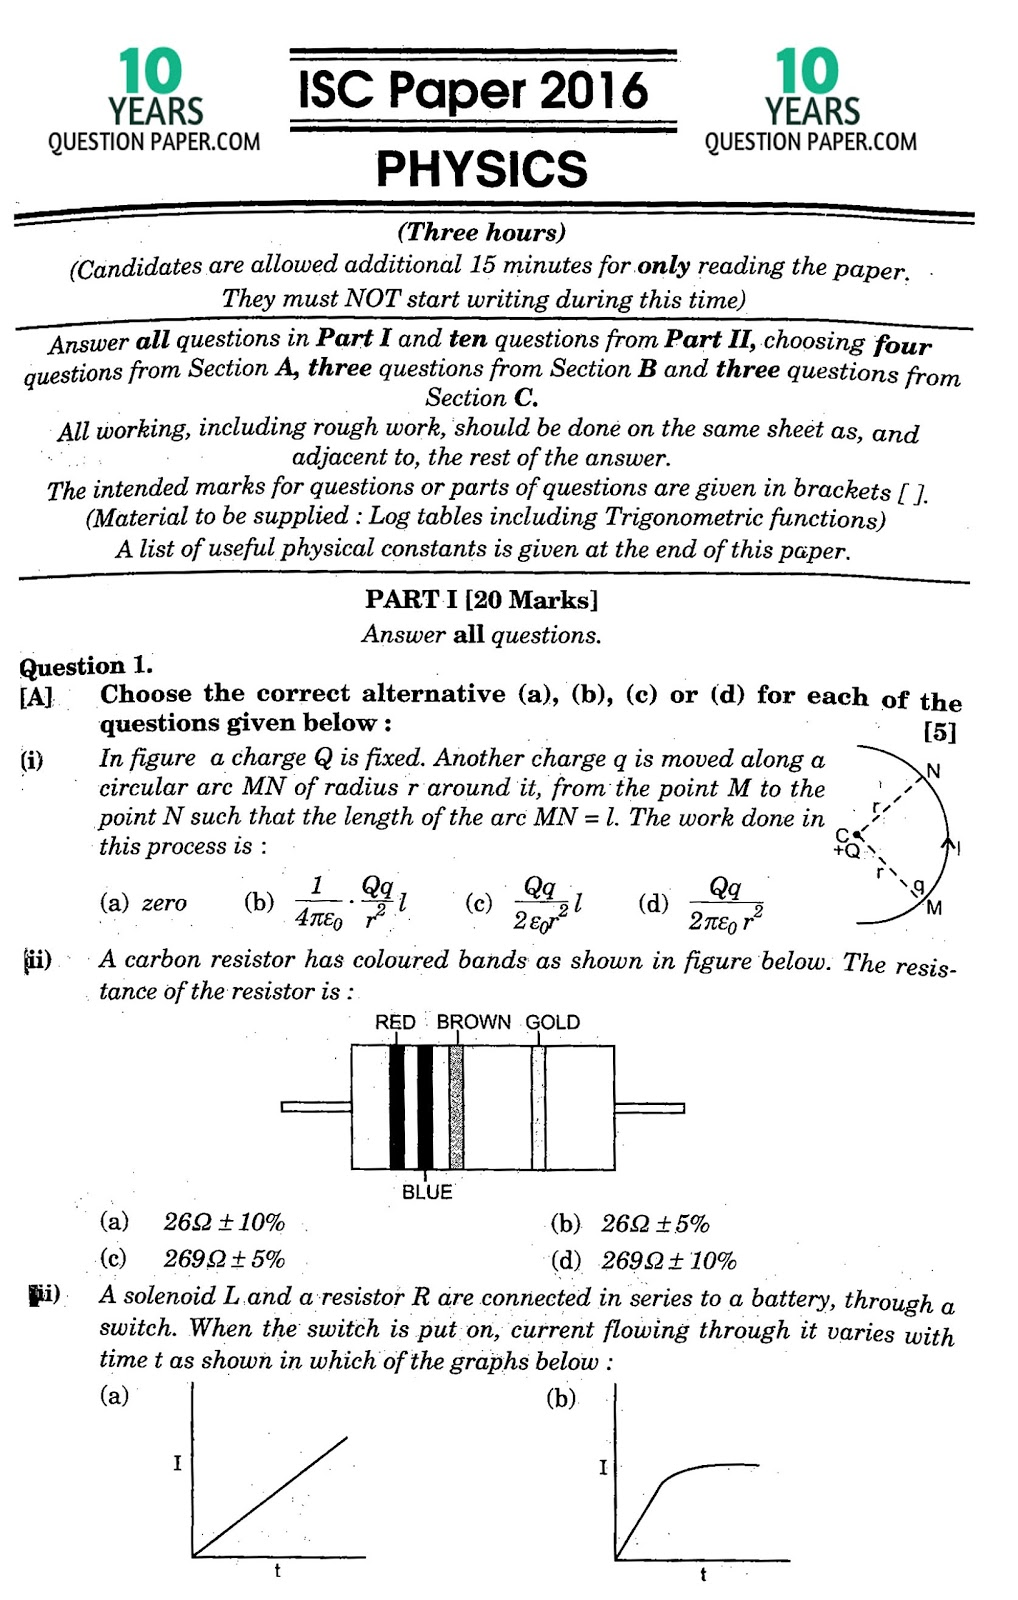 isc 2016 physics solved paper 10 years question paper note the solution will be sent in your email in 24 hr